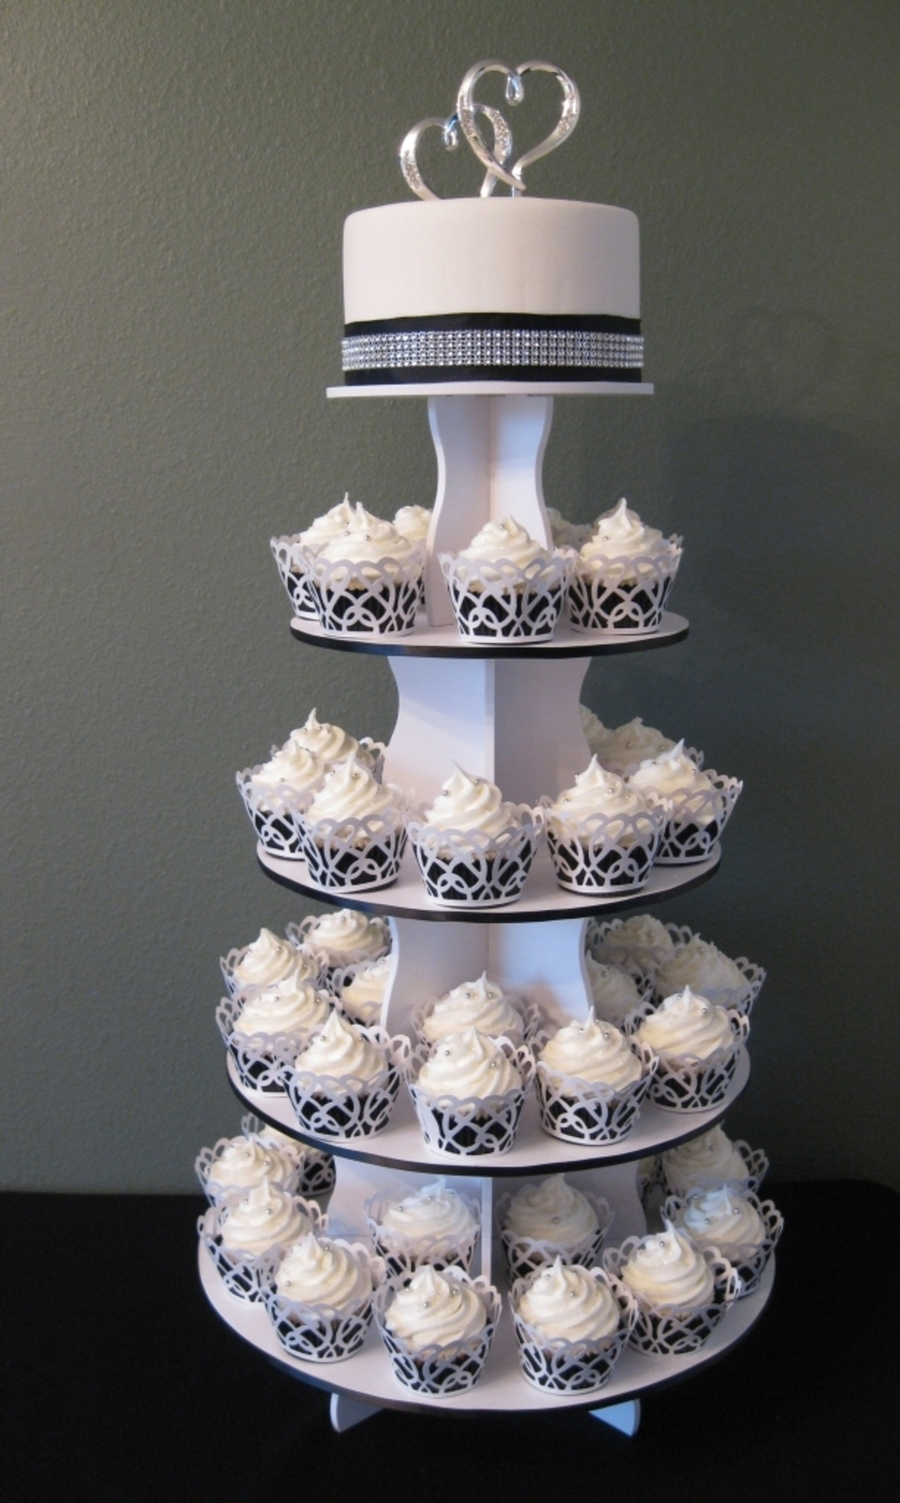 Cupcake Wedding Cake on Cake Central